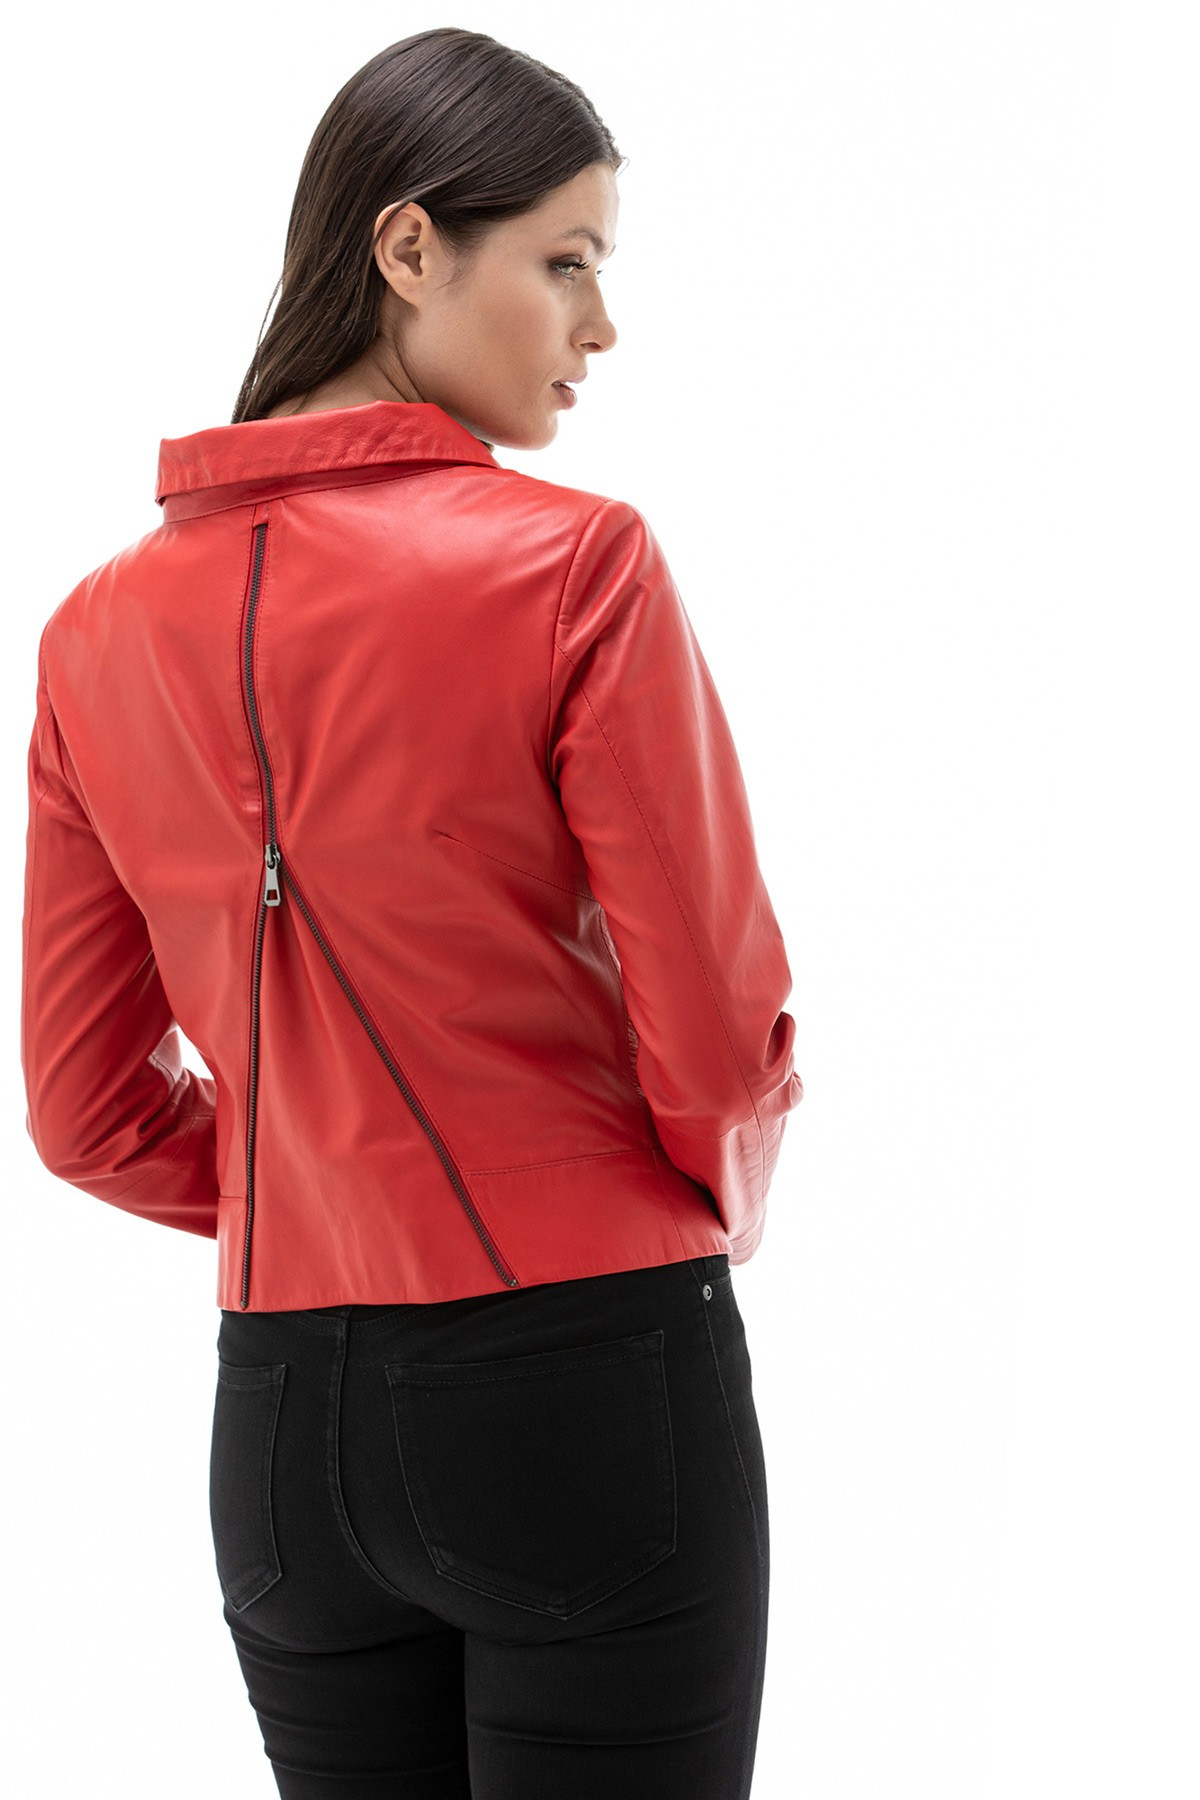 Red Leather Jacket Cheap